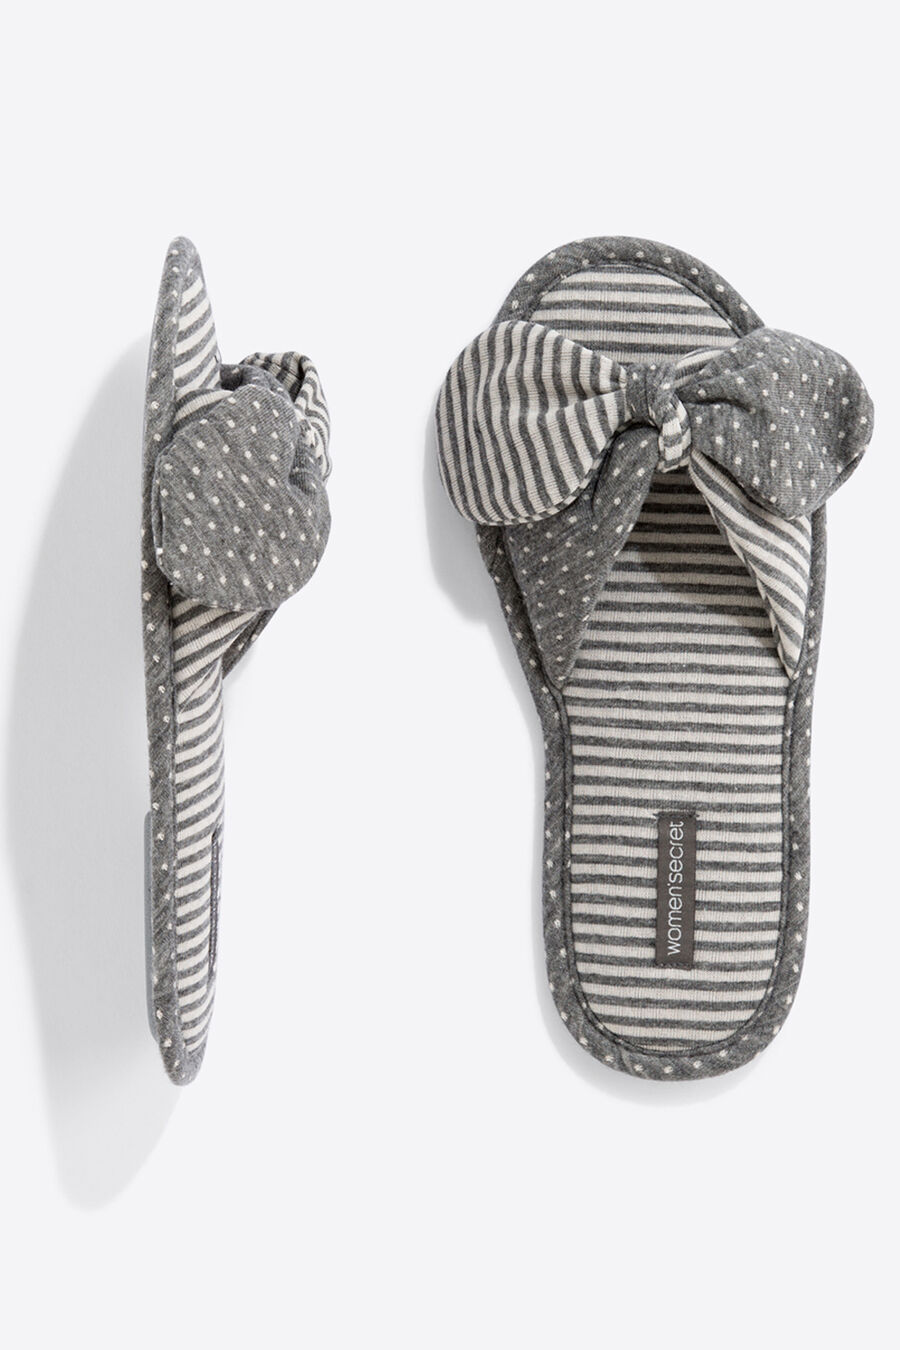 Shower slippers with bows